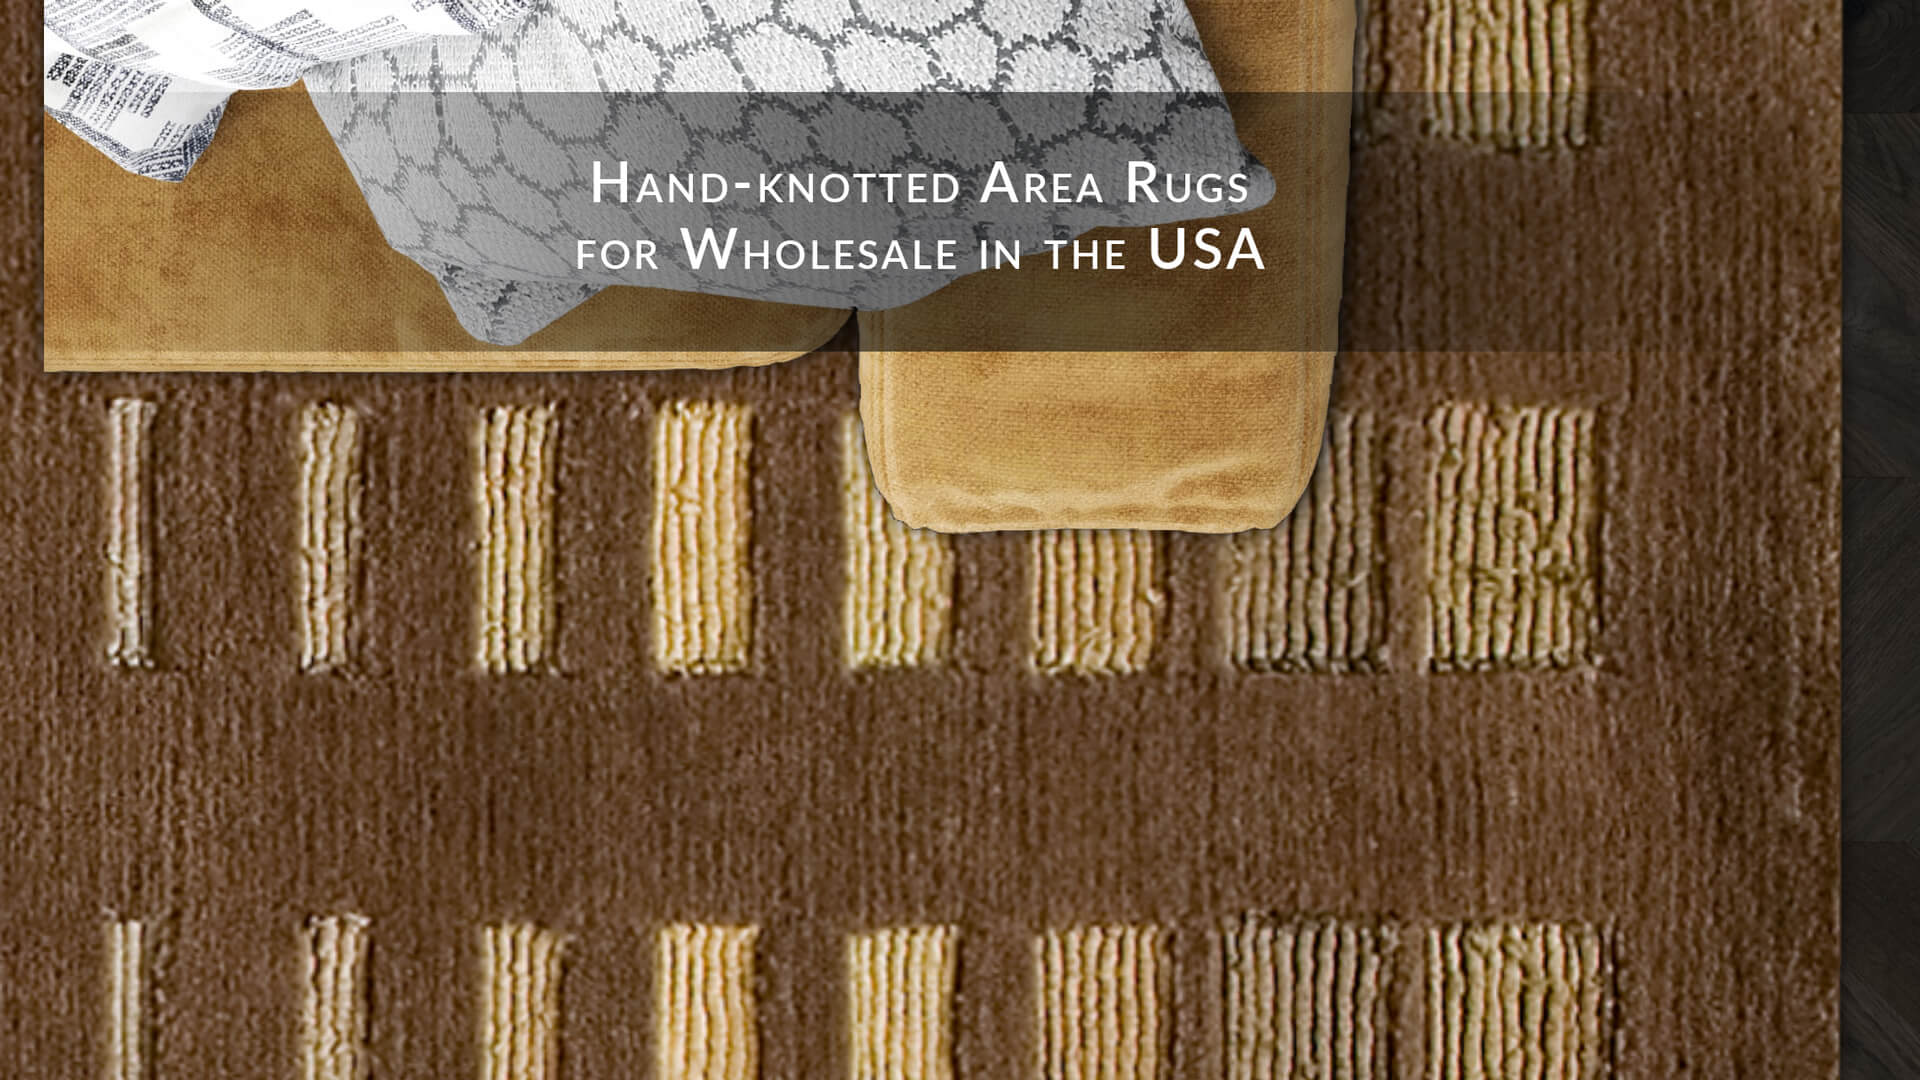 Hand-knotted-area-rugs-for-wholesale-in-the-USA